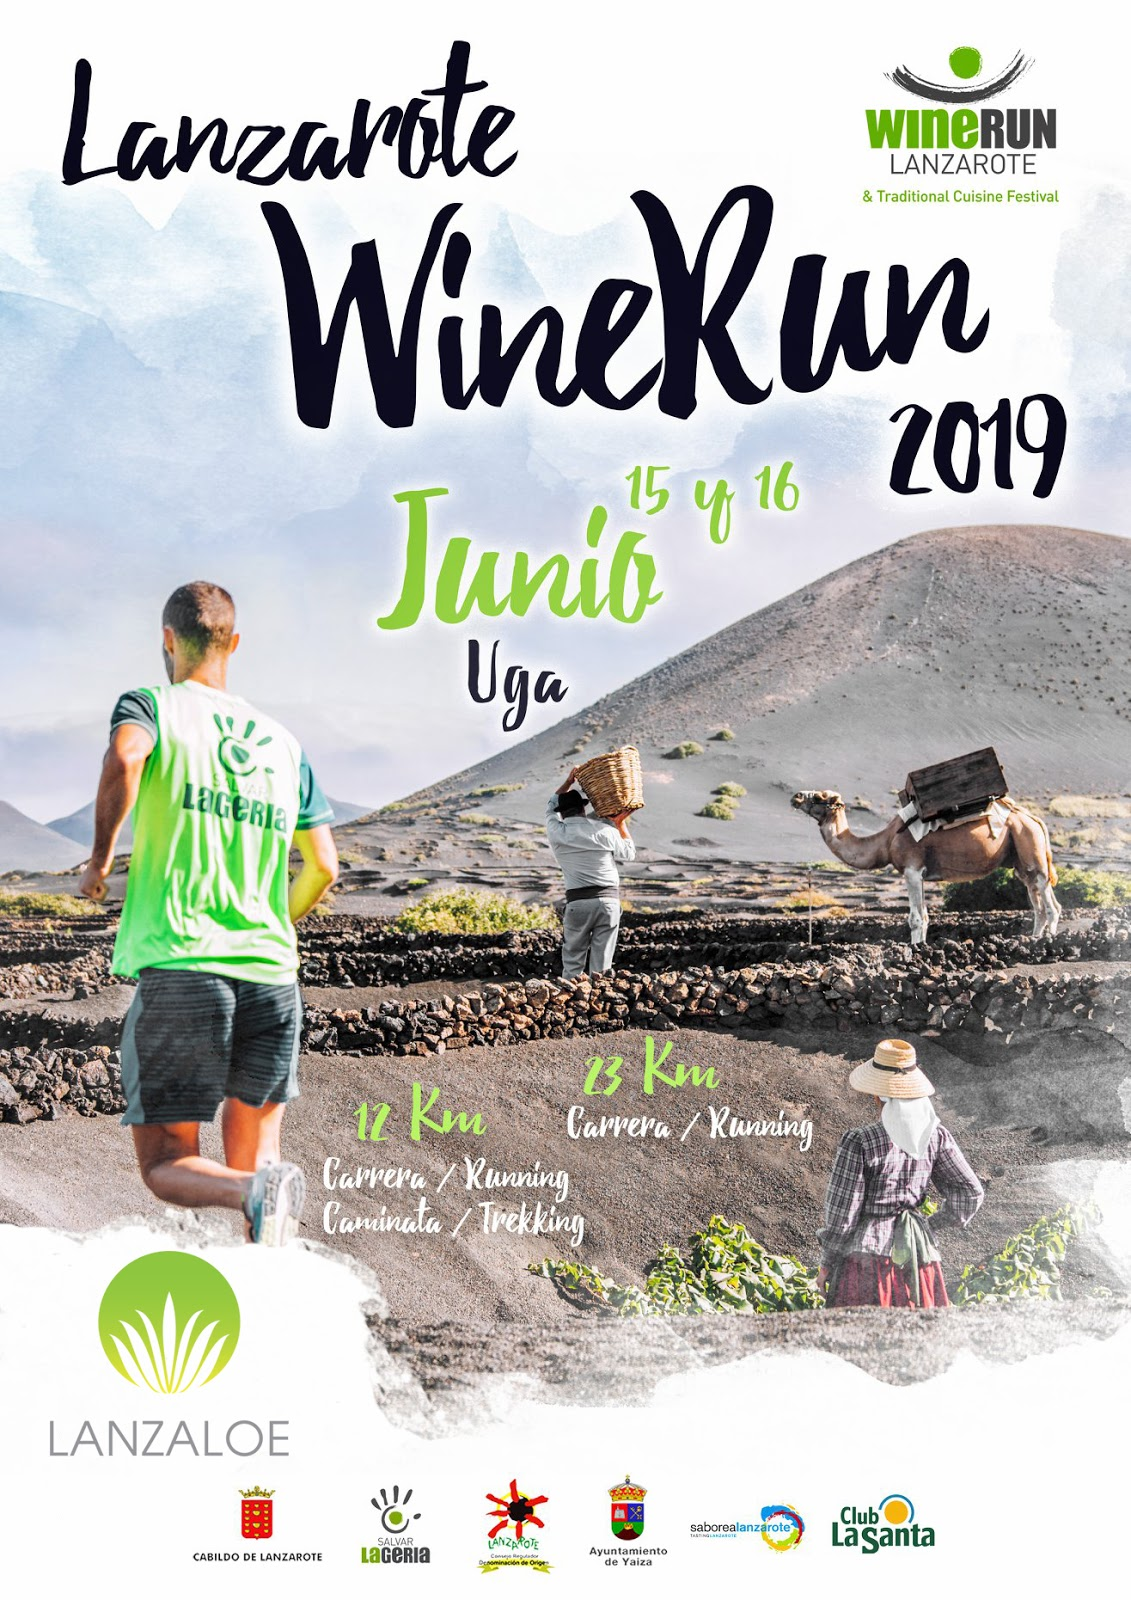 One more year, Lanzaloe is sponsor of the Wine Run Lanzarote 2019!